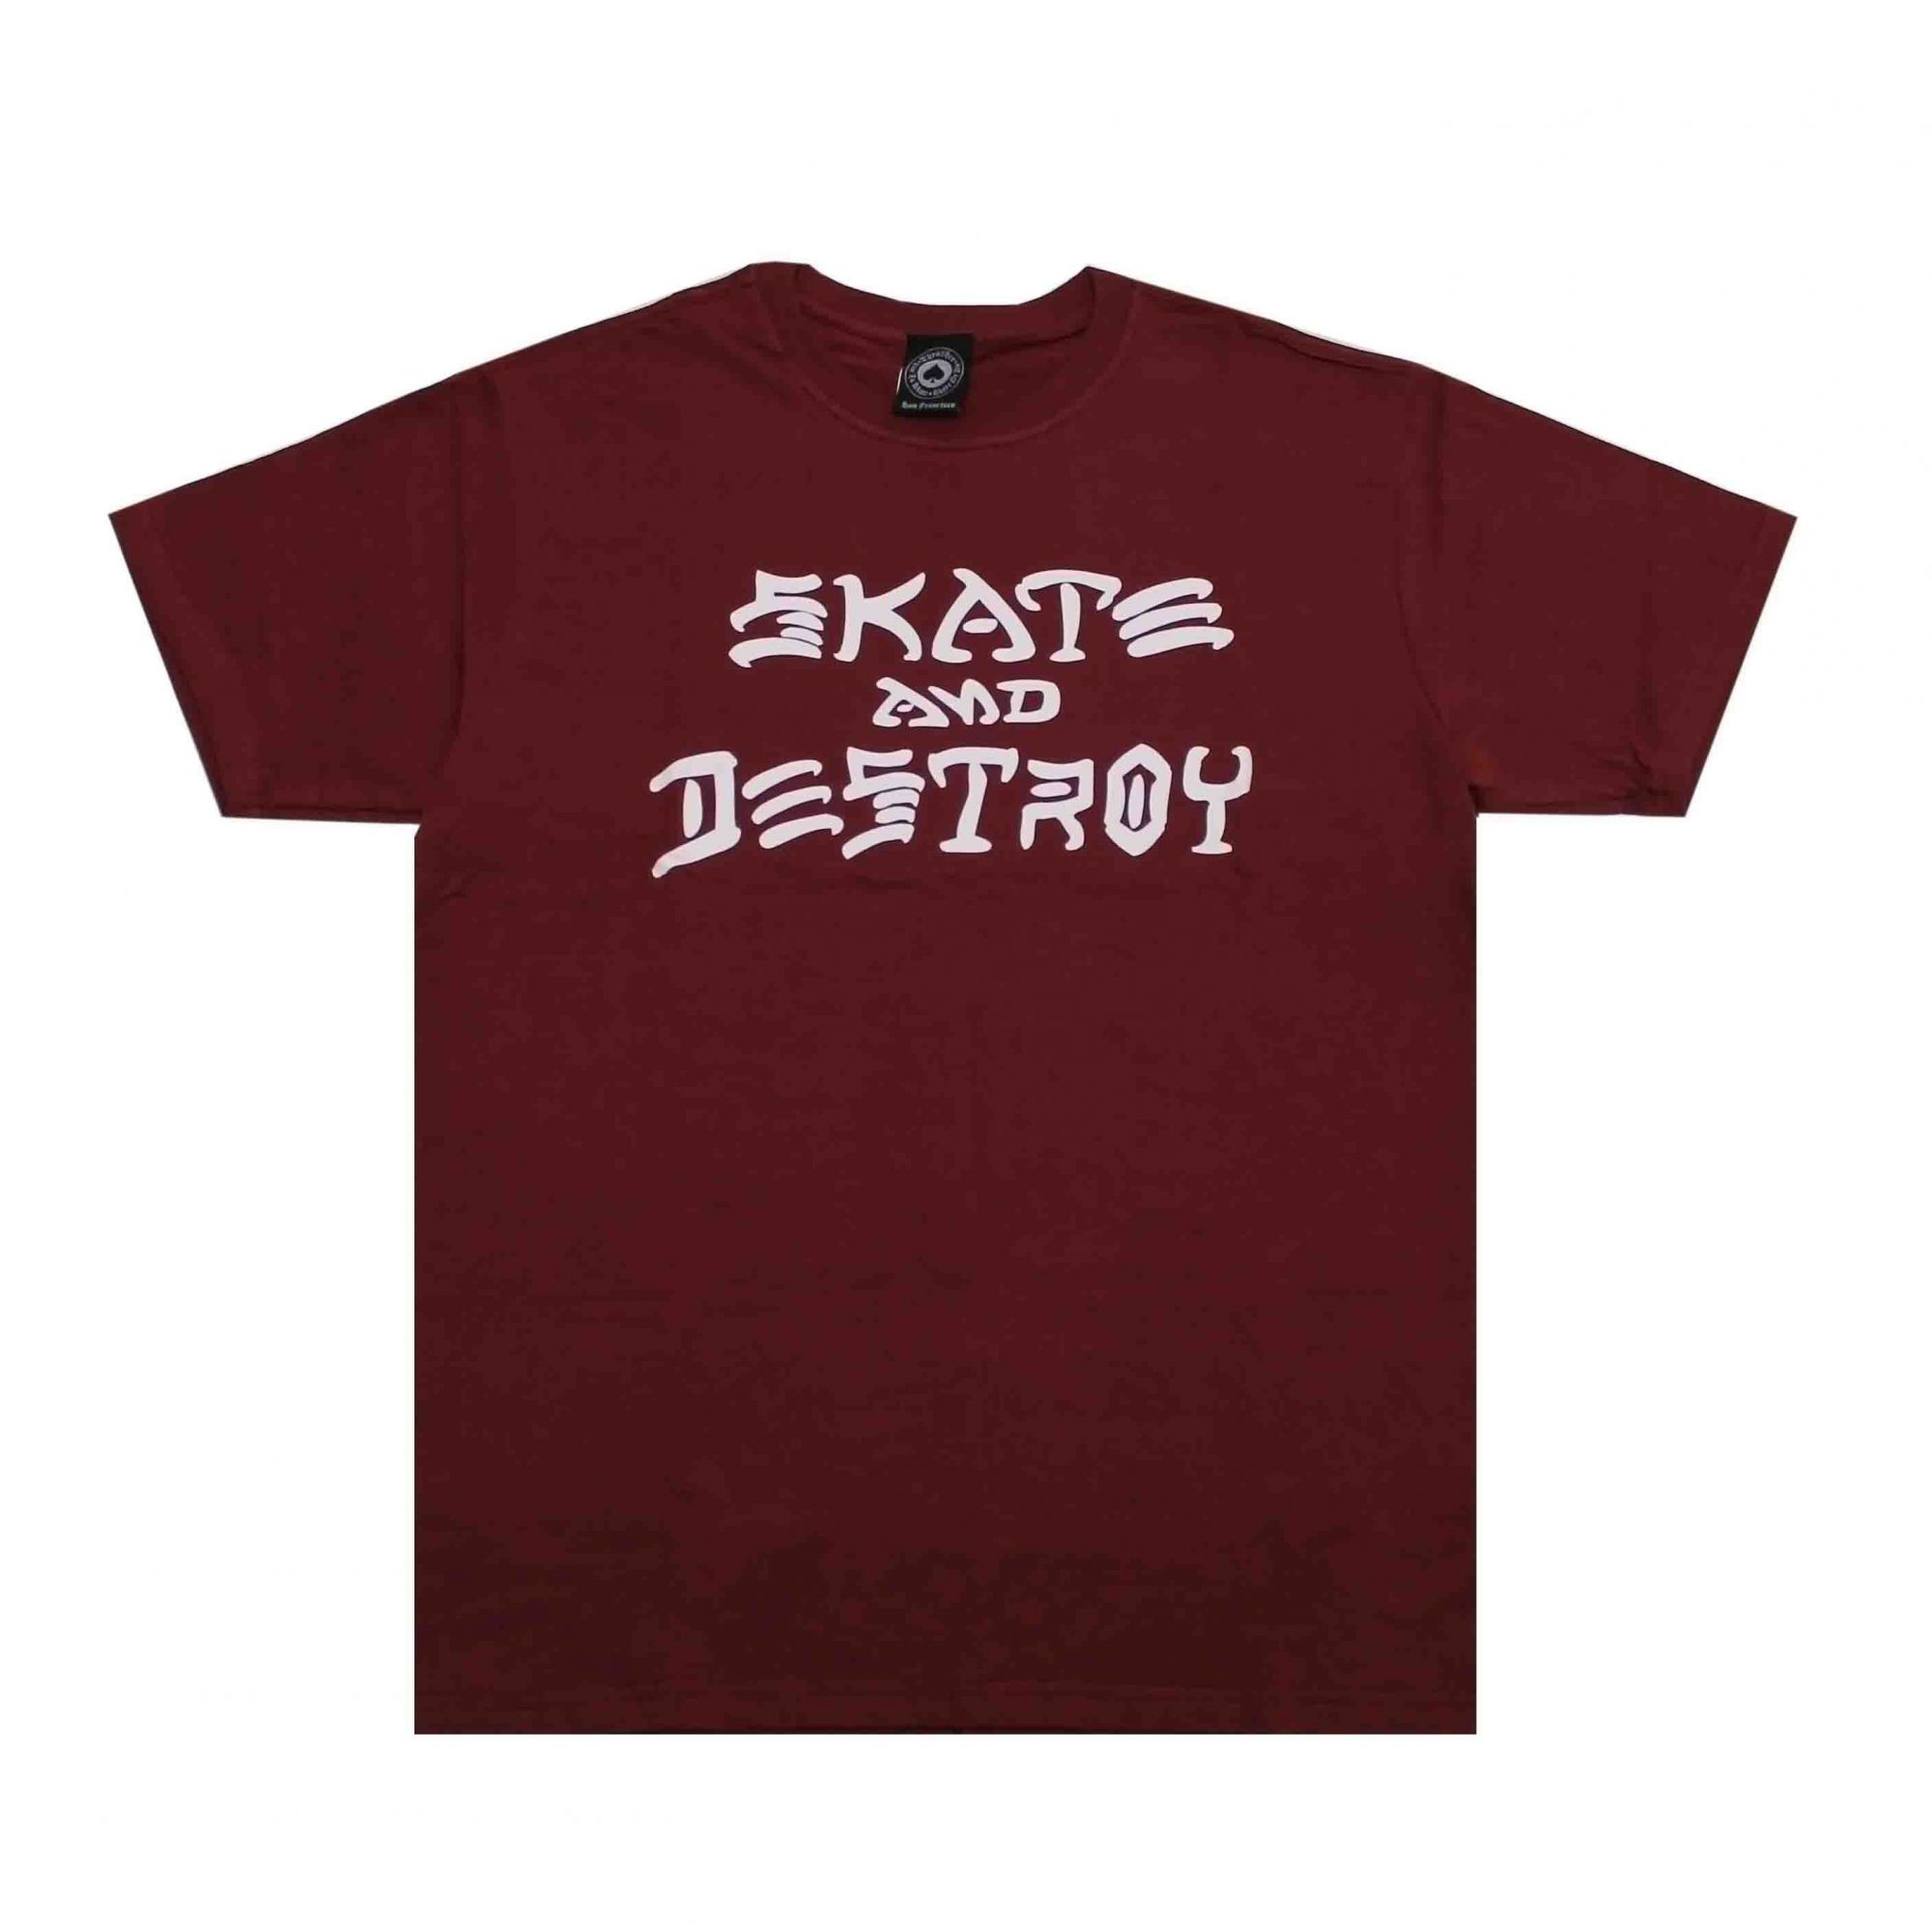 Camiseta Thrasher Magazine Skate and Destroy Vinho